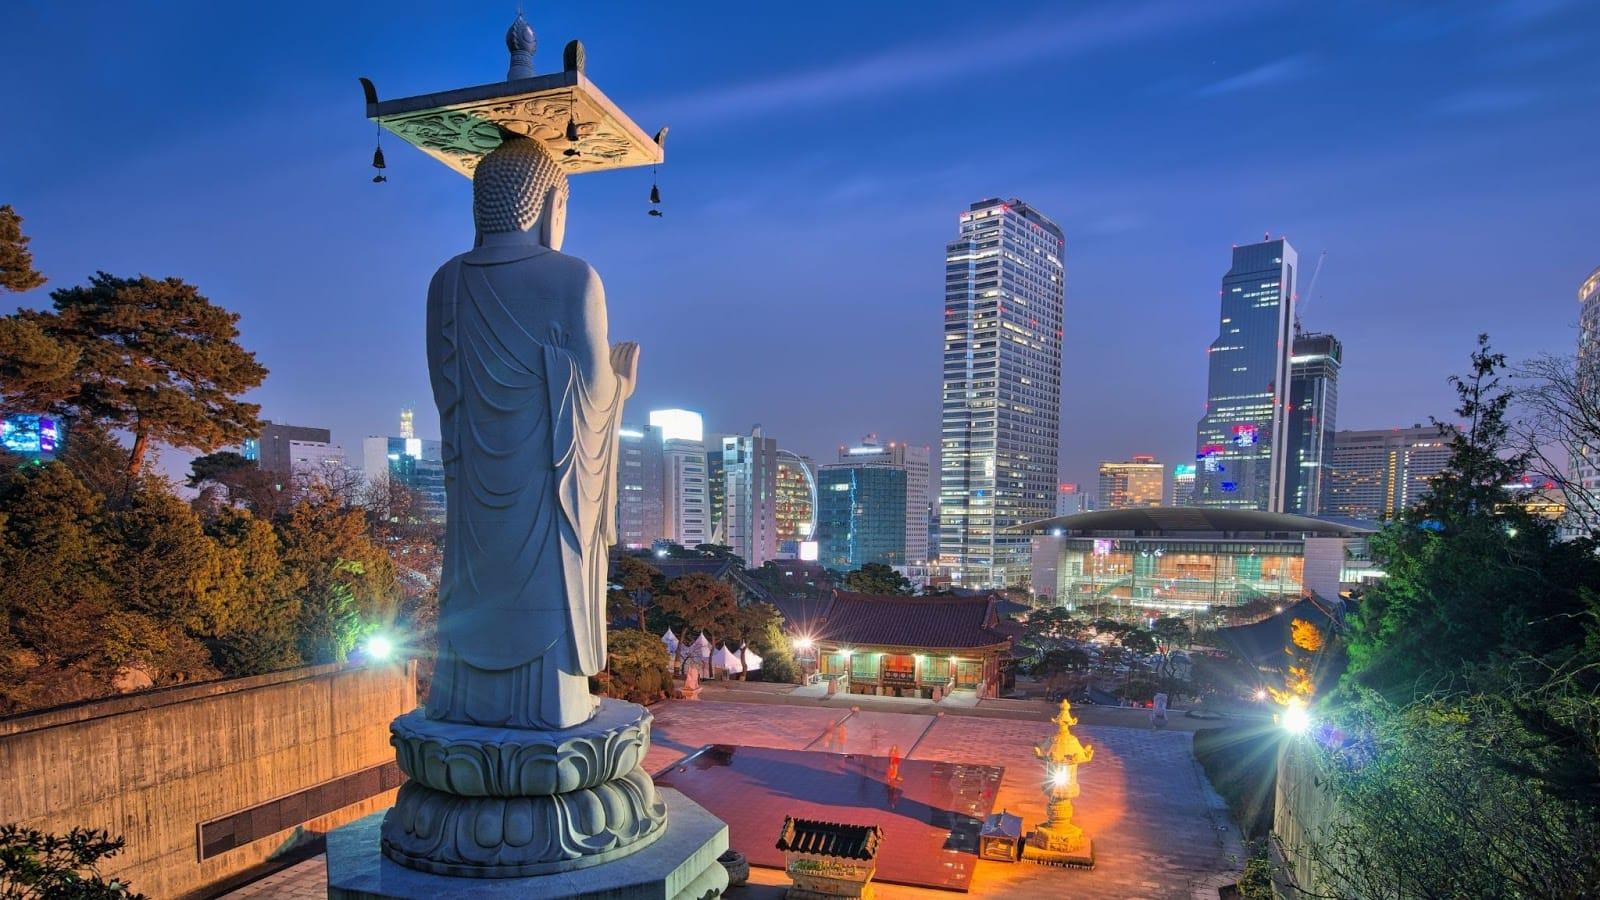 Generally South Korea is very safe for travellers